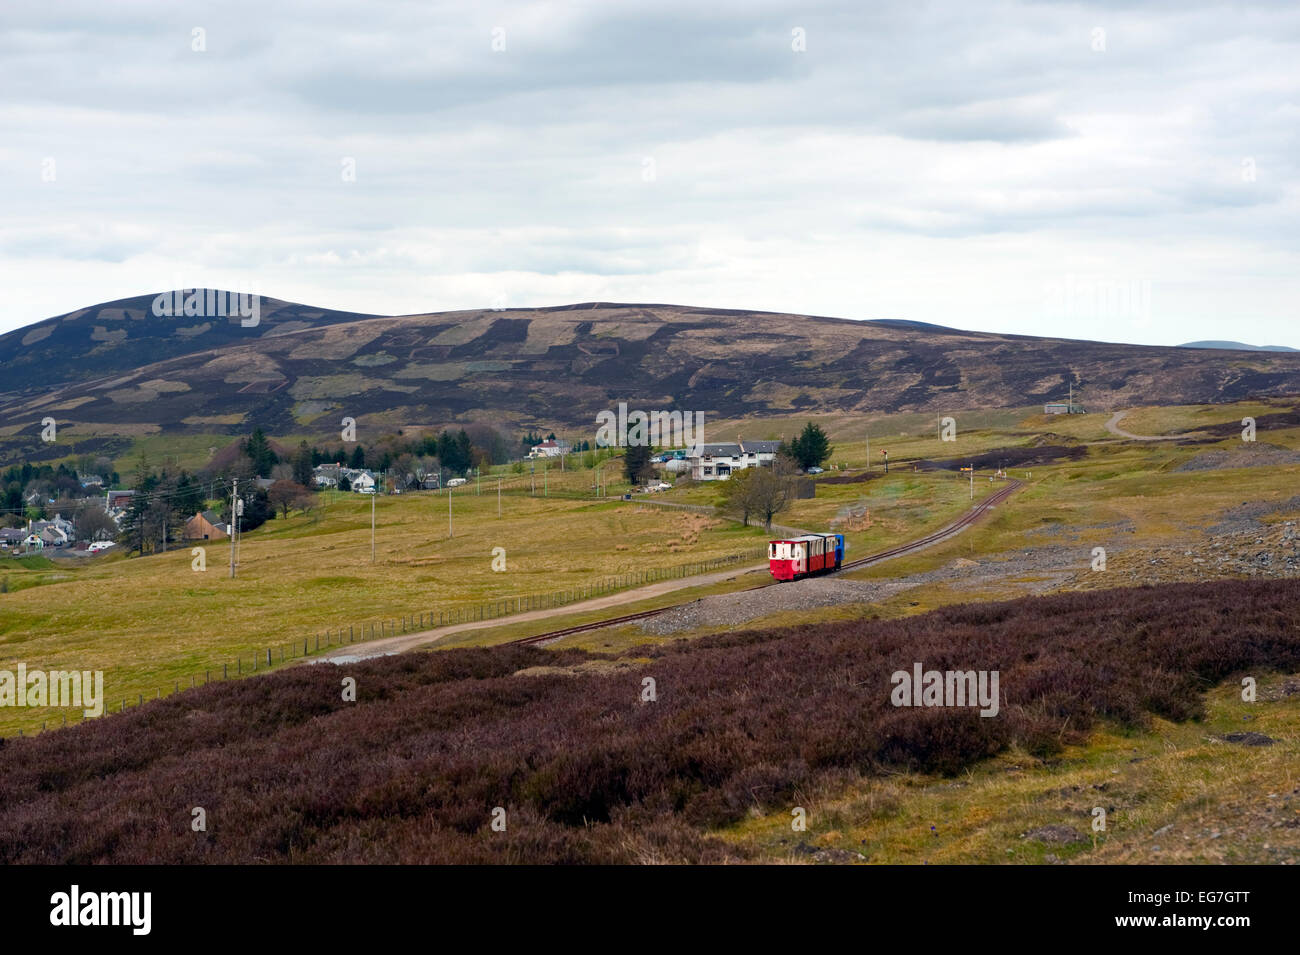 Train on the Wanlockhead and leadhills railway. Leadhills is a village in South Lanarkshire, Scotland, 5¾ miles - Stock Image